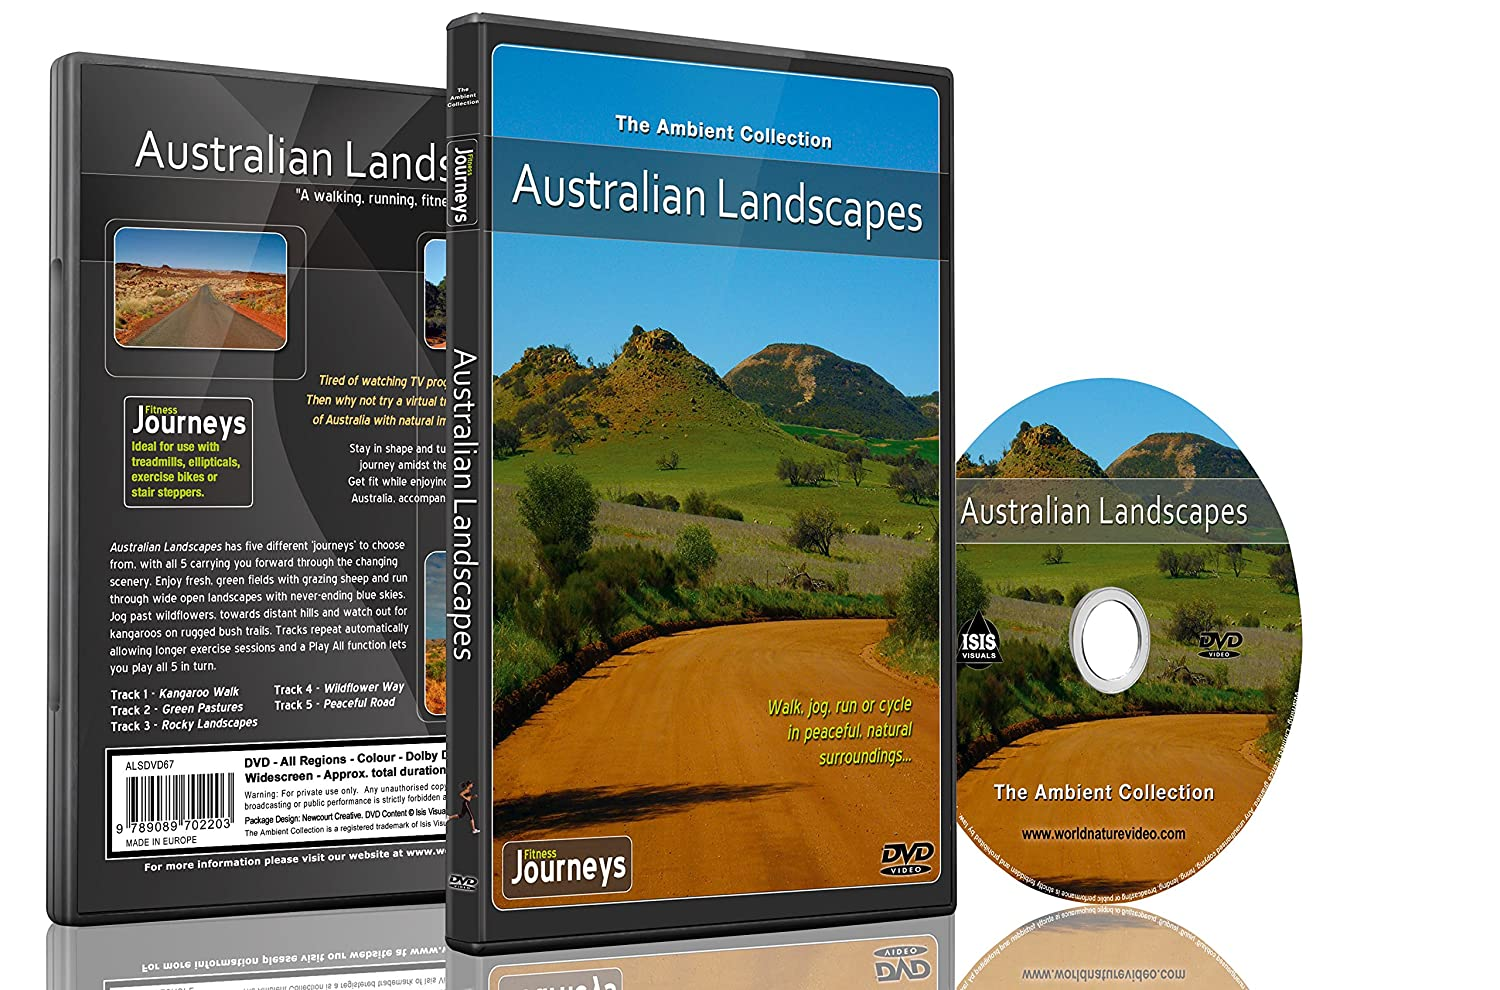 Fitness Journeys - Australian Landscapes , for indoor walking, treadmill and cycling workouts The Ambient Collection Tony Helsloot Naturedvdca Nonfiction - Nature - Fitness